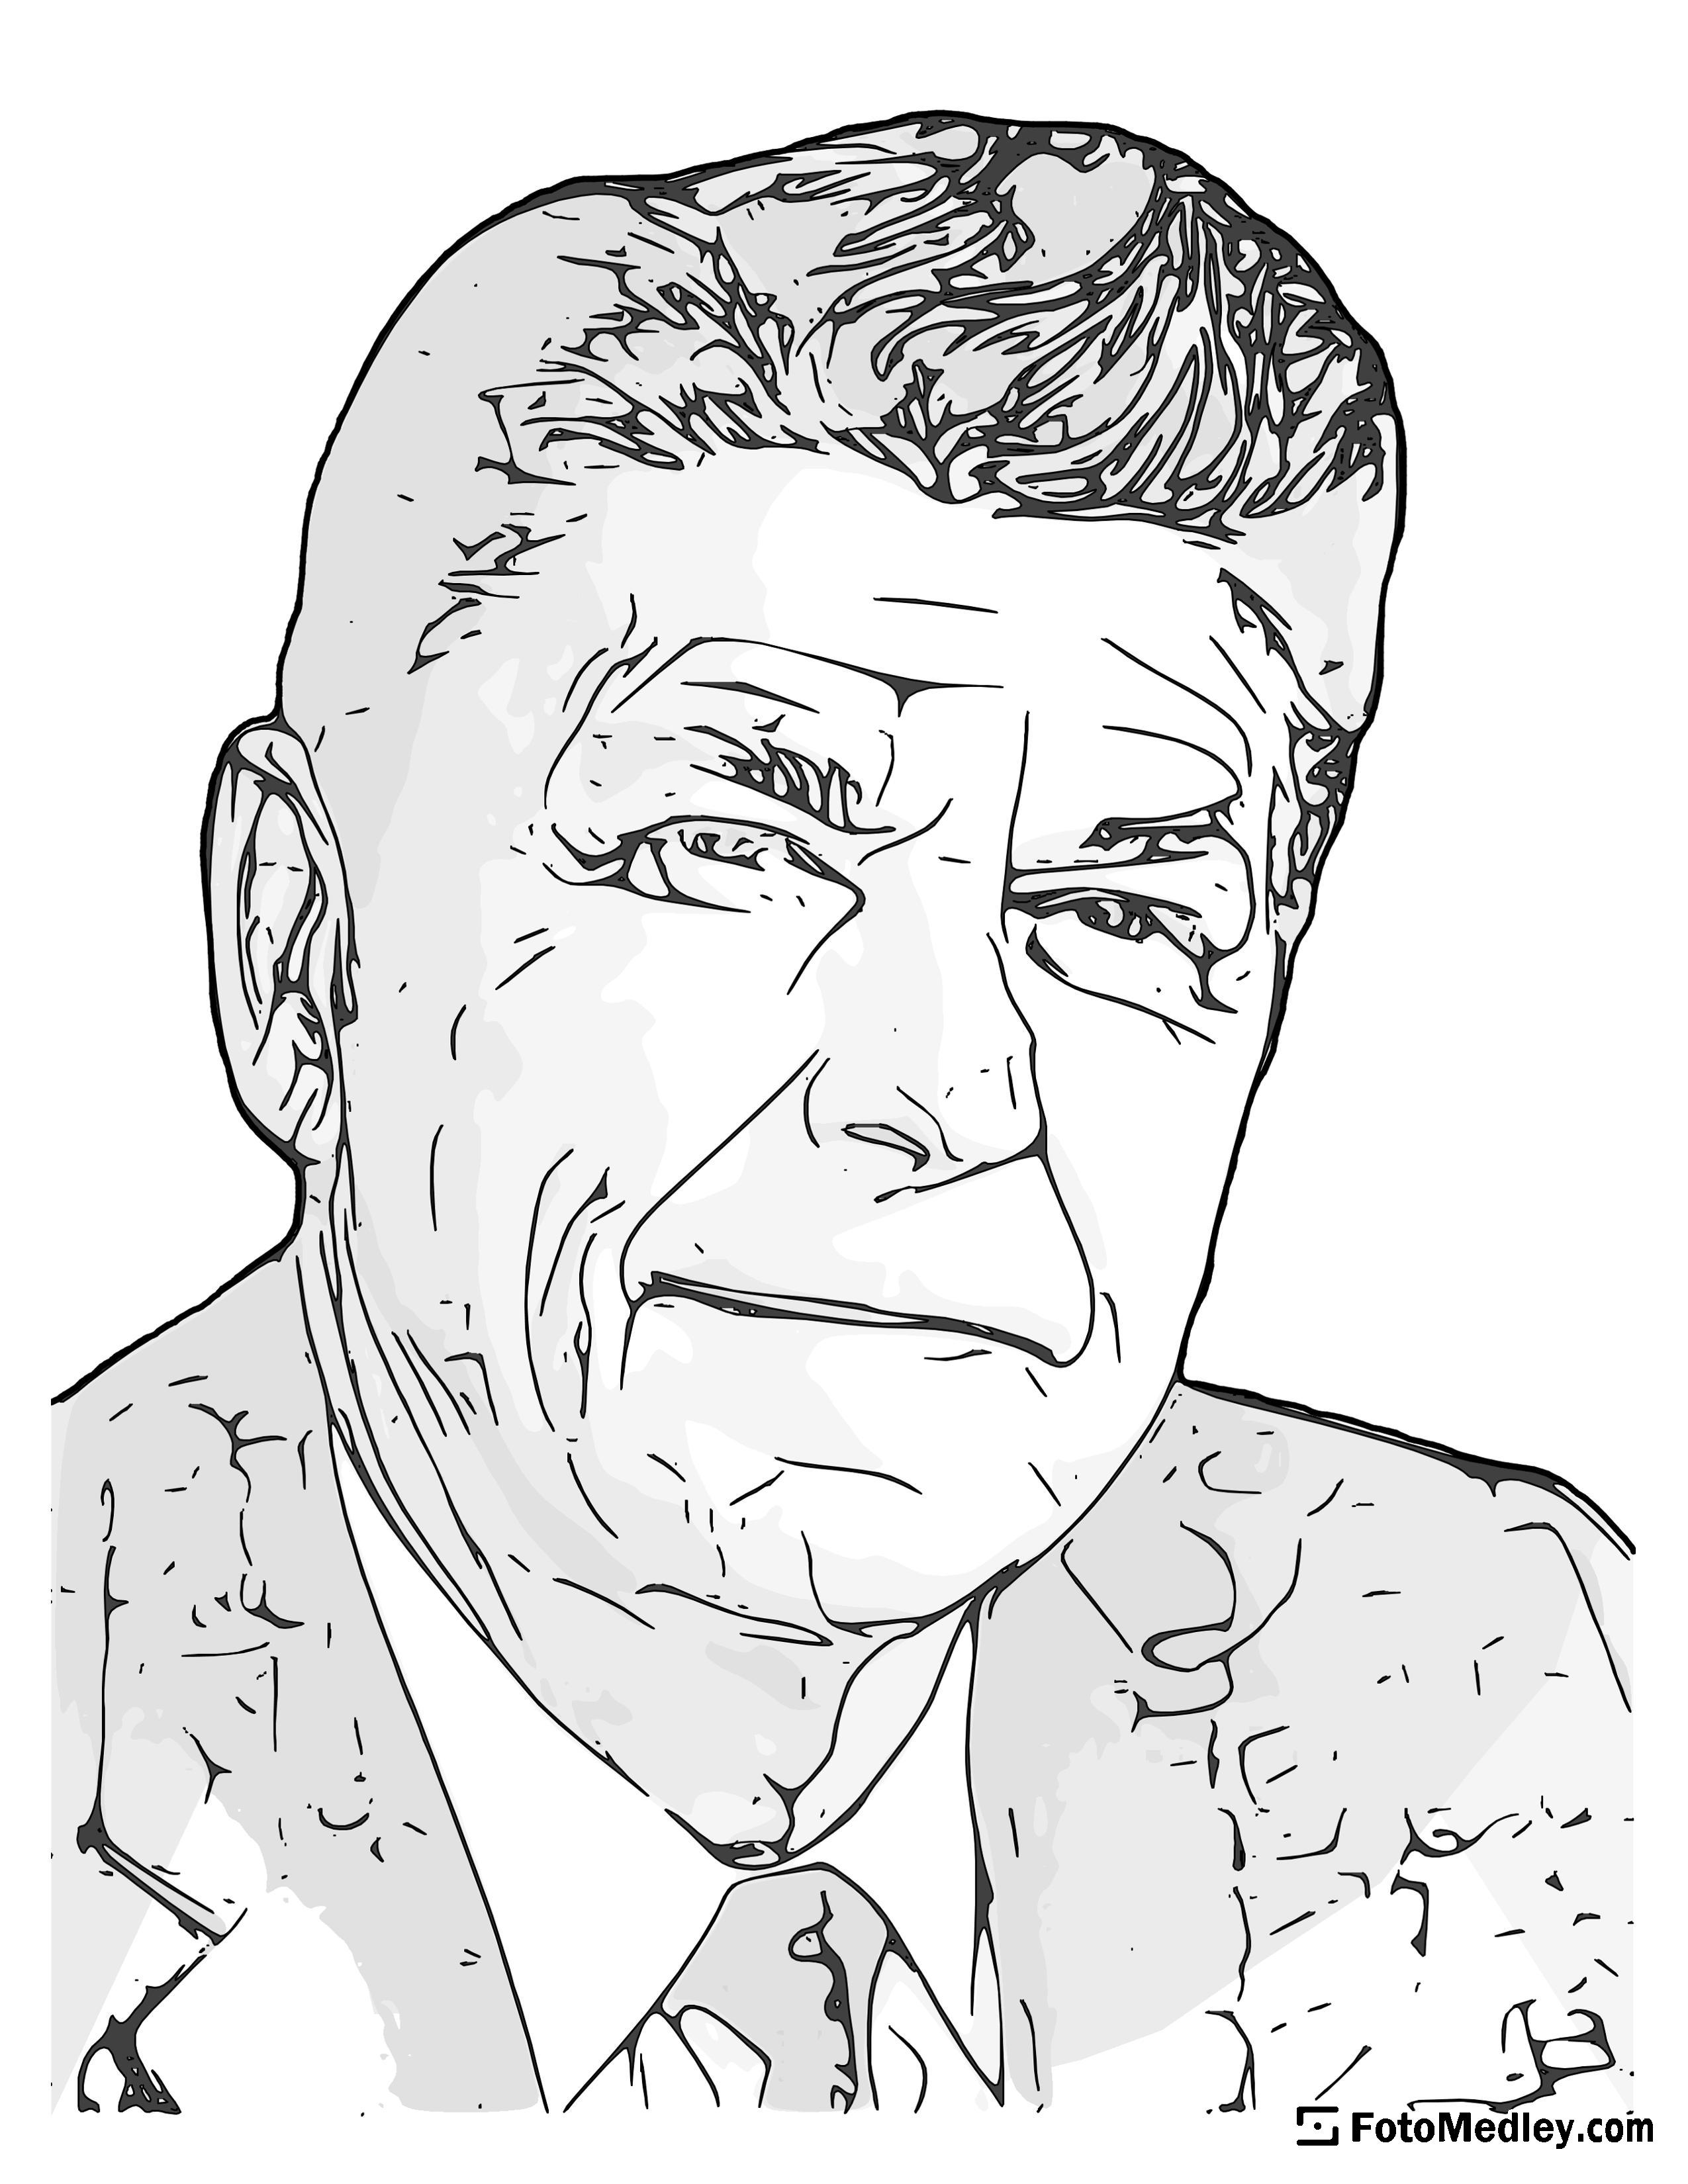 A cartoon style coloring sketch of Ronald Reagan, 40th President of the United States.